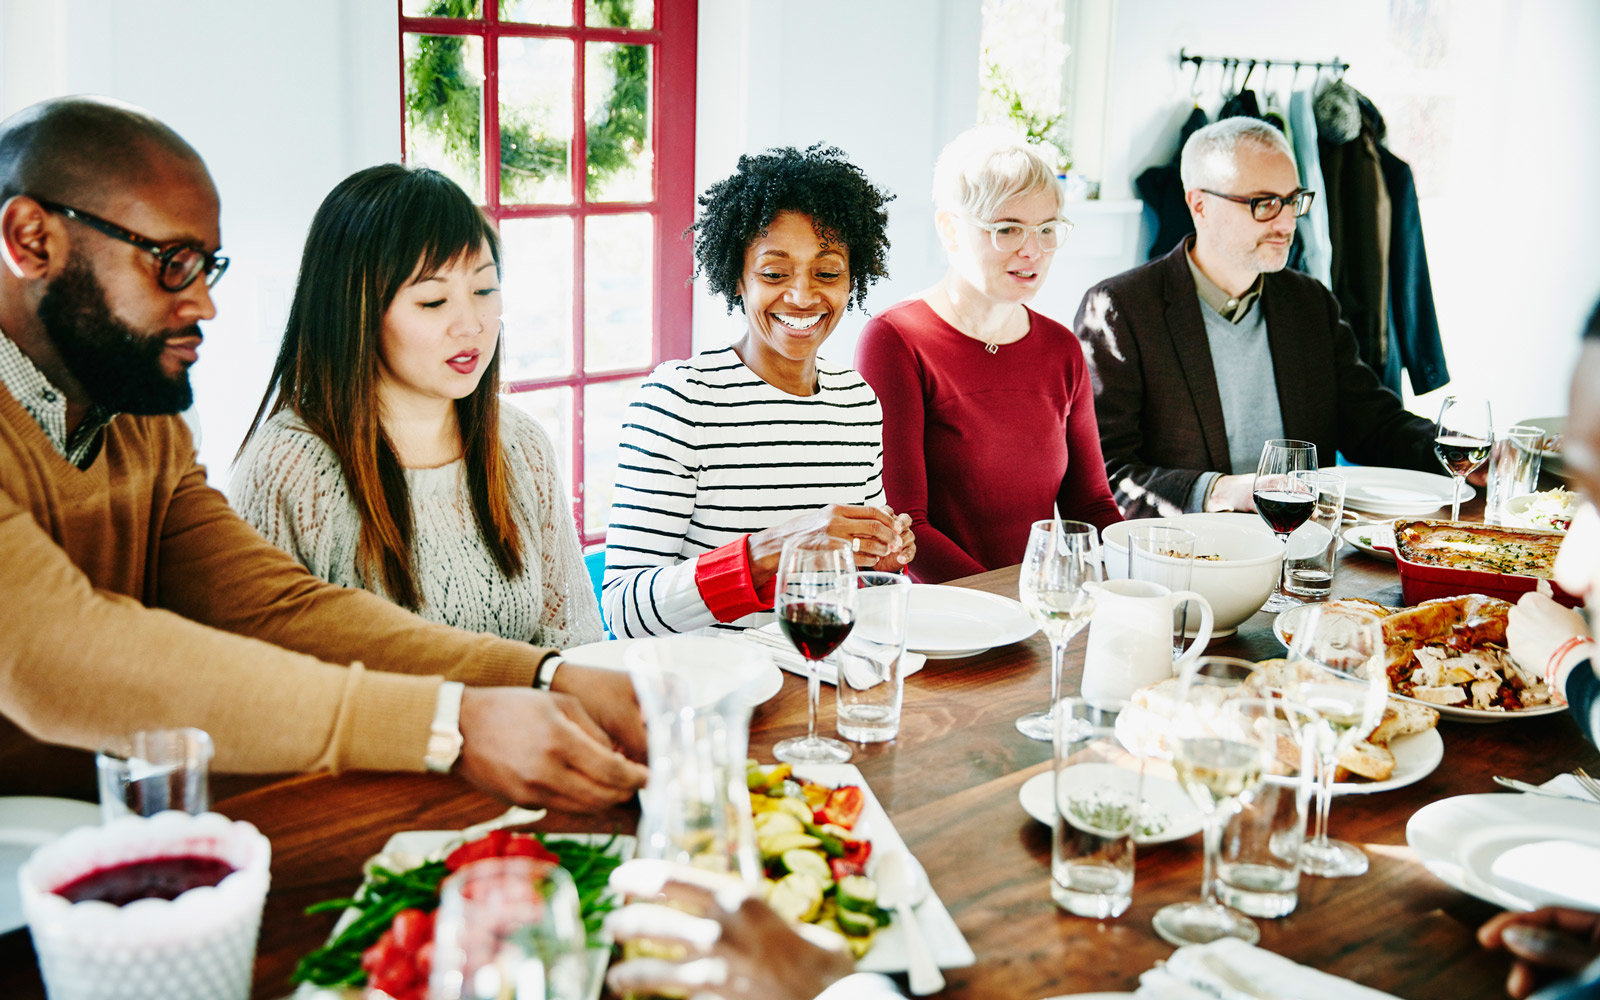 Smiling friends serving each other during holiday meal together